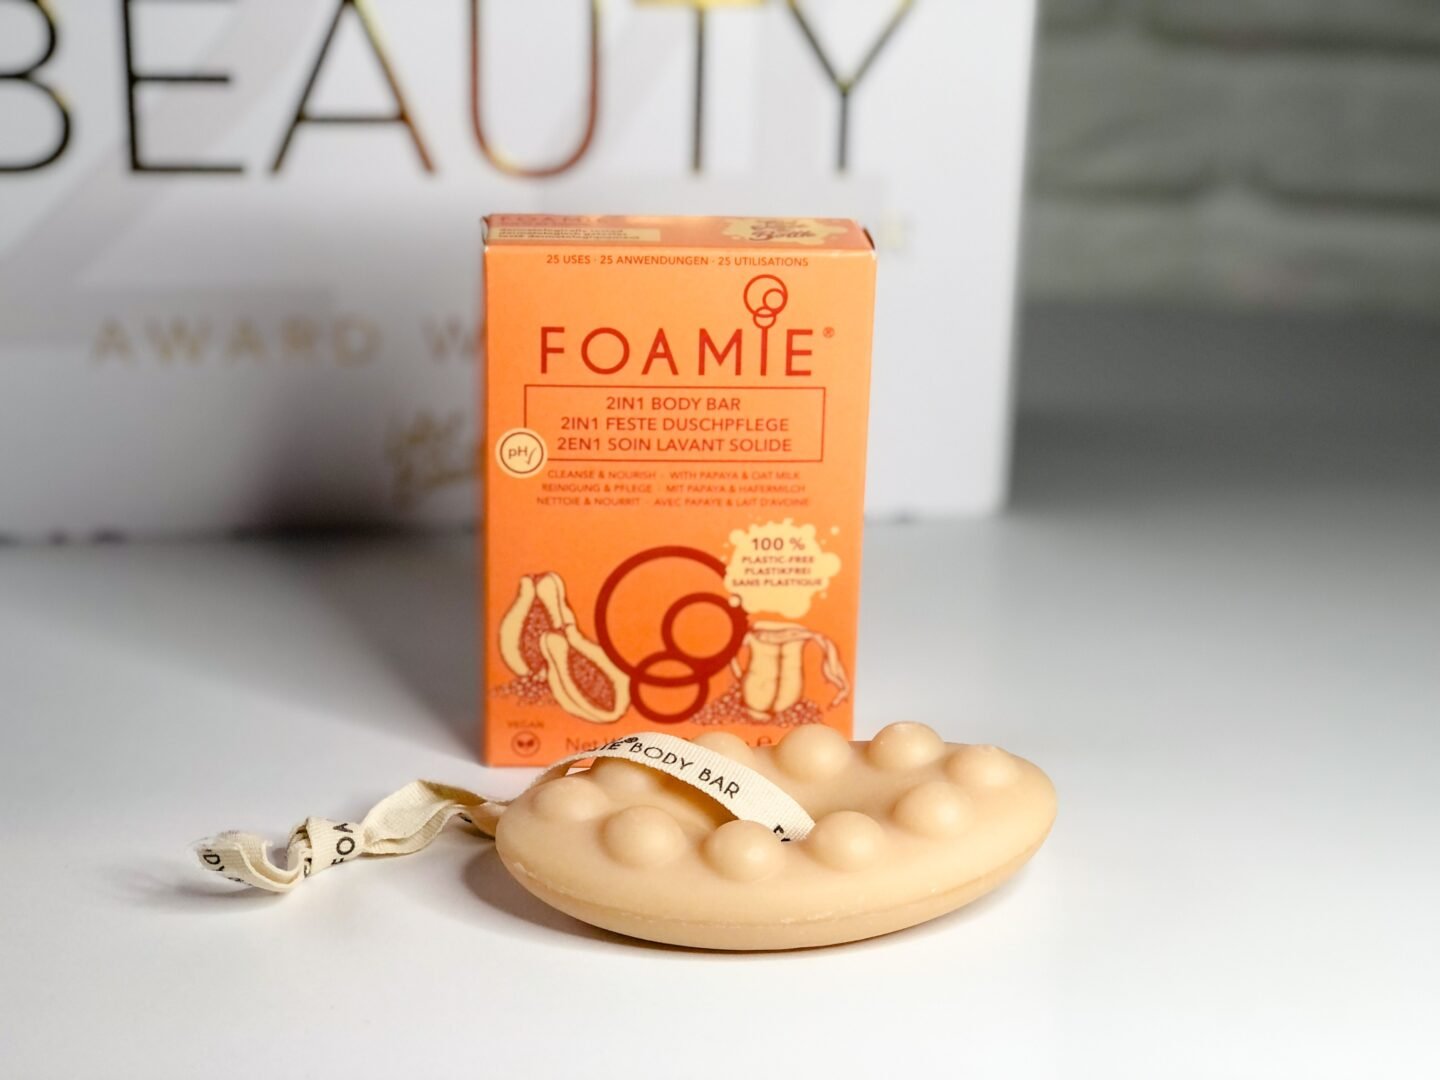 Foamie Papaya & Oat Milk 2 in 1 Body Bar - Beauty Calendar: The Award Winners